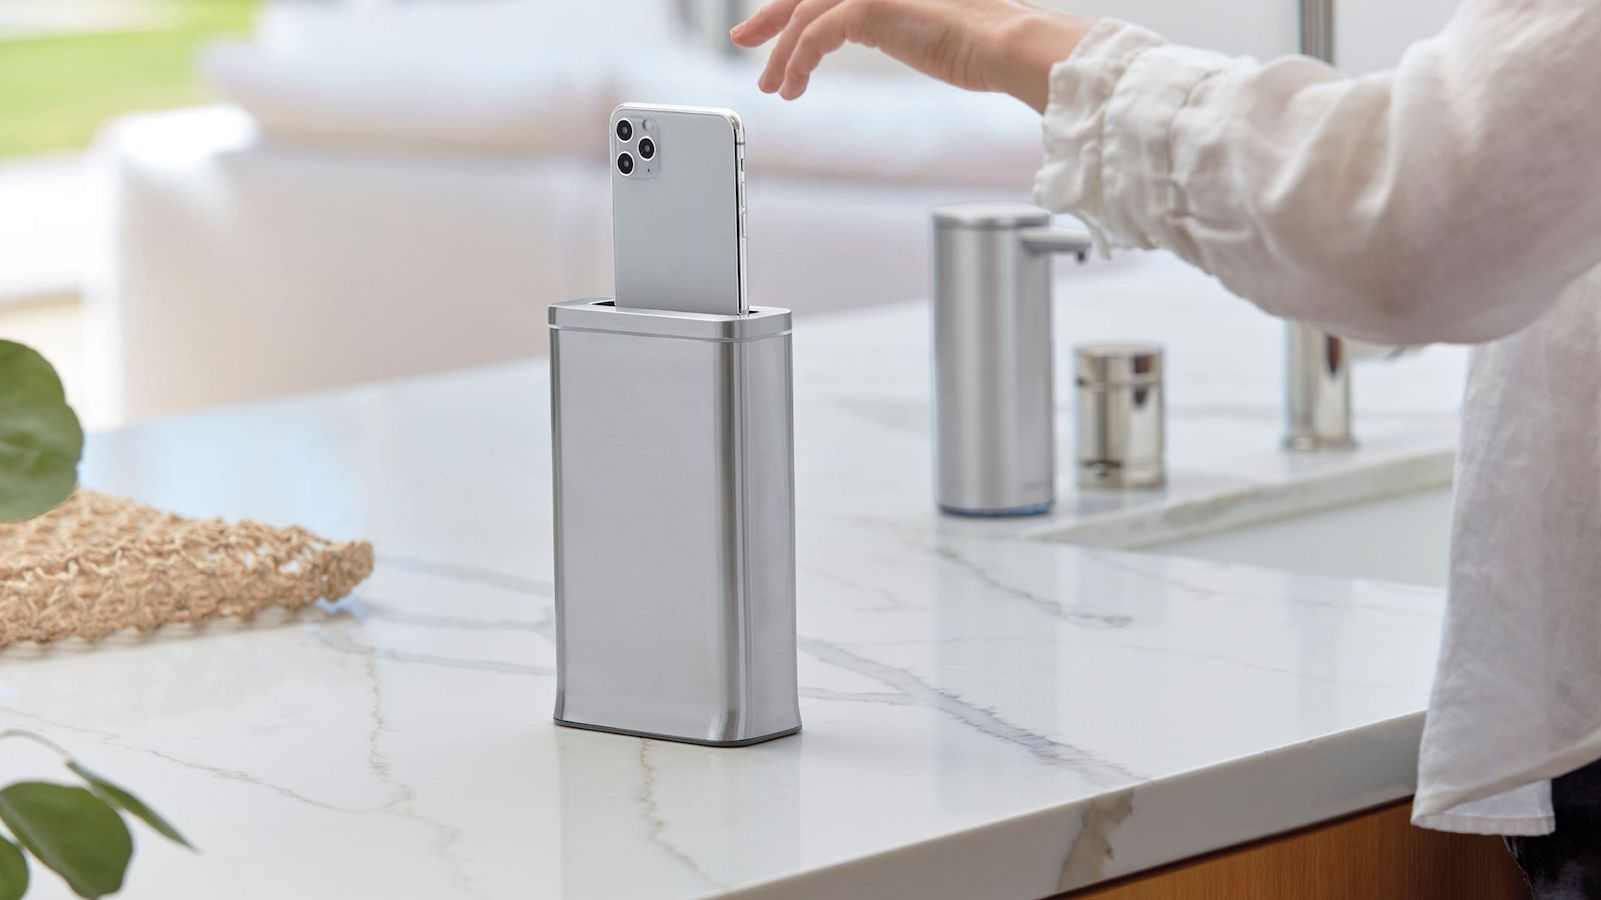 cleanstation Sanitizing System by simplehuman